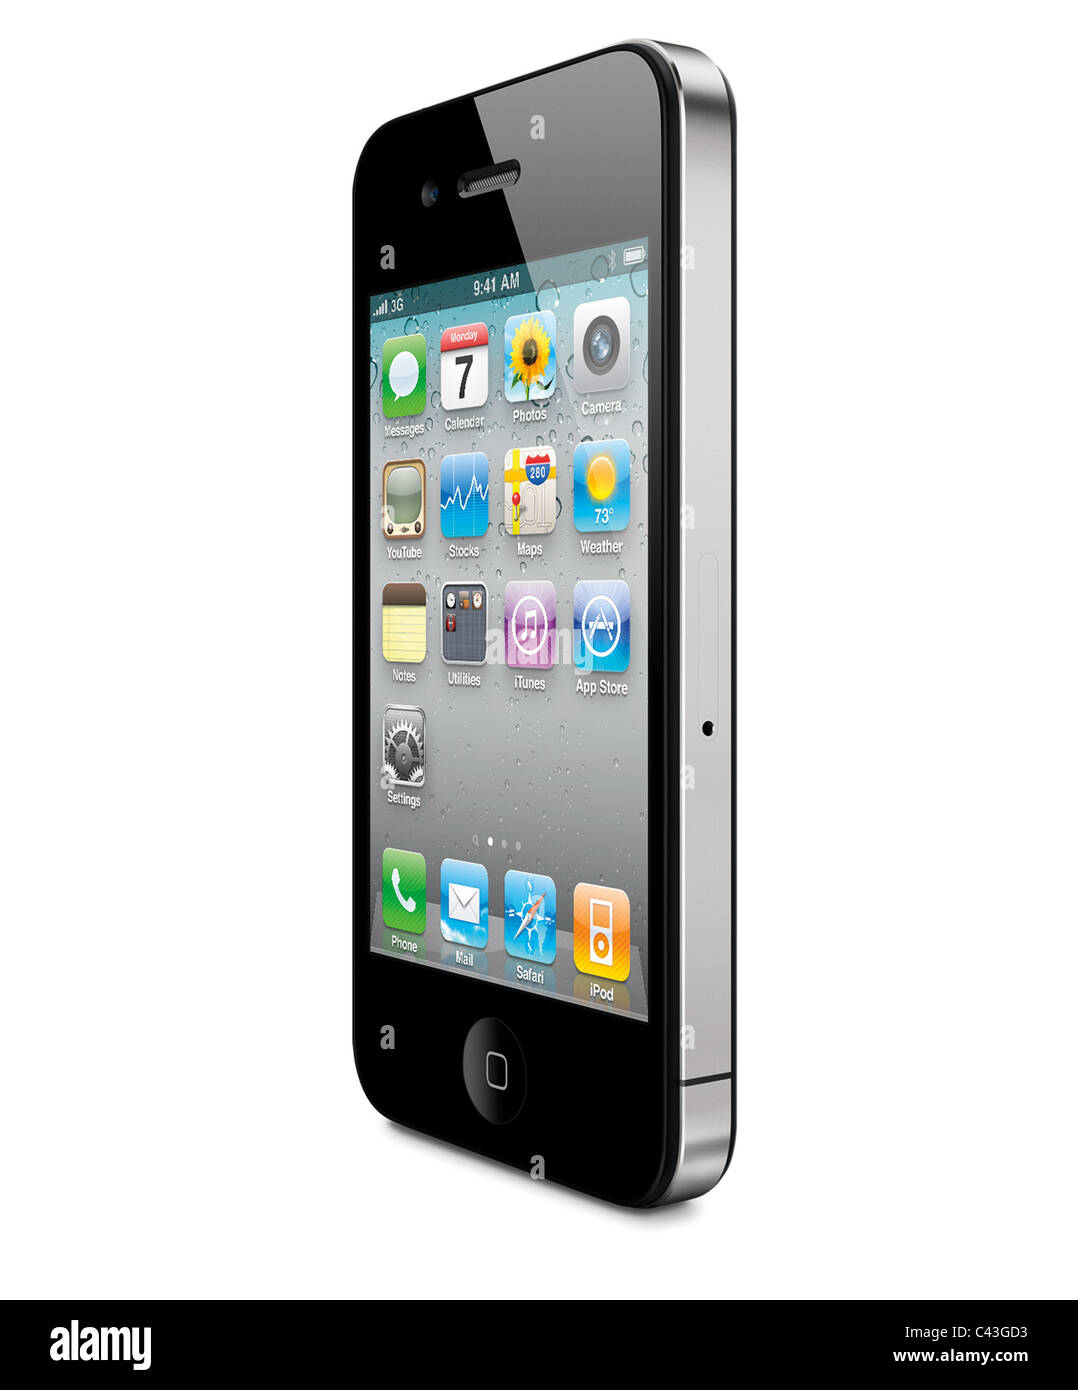 iPhone 4 cut out Perspective view, in white background - Stock Image